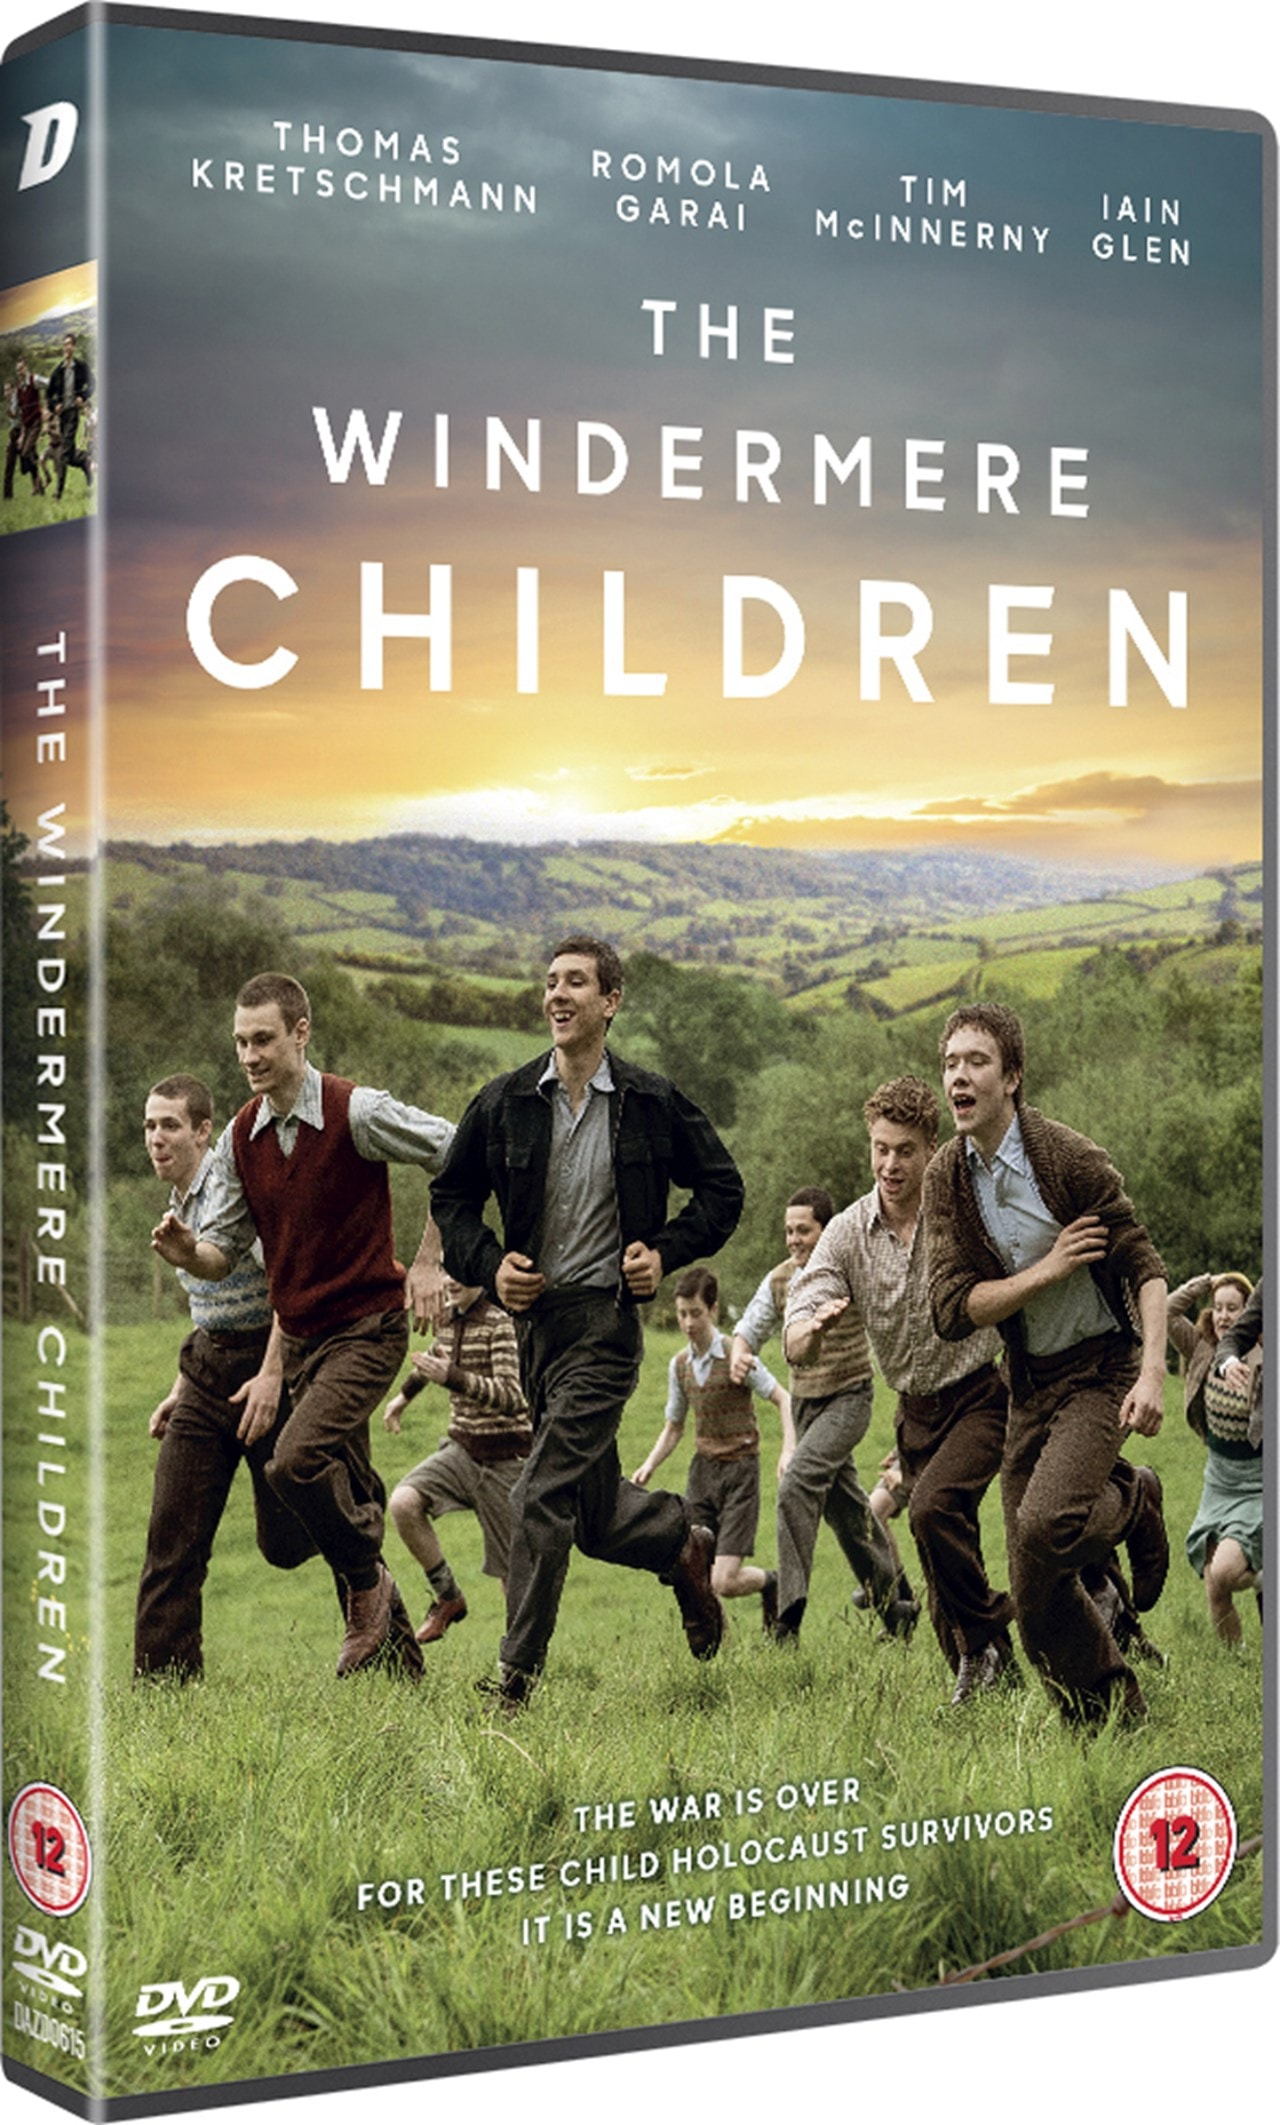 The Windermere Children - 2